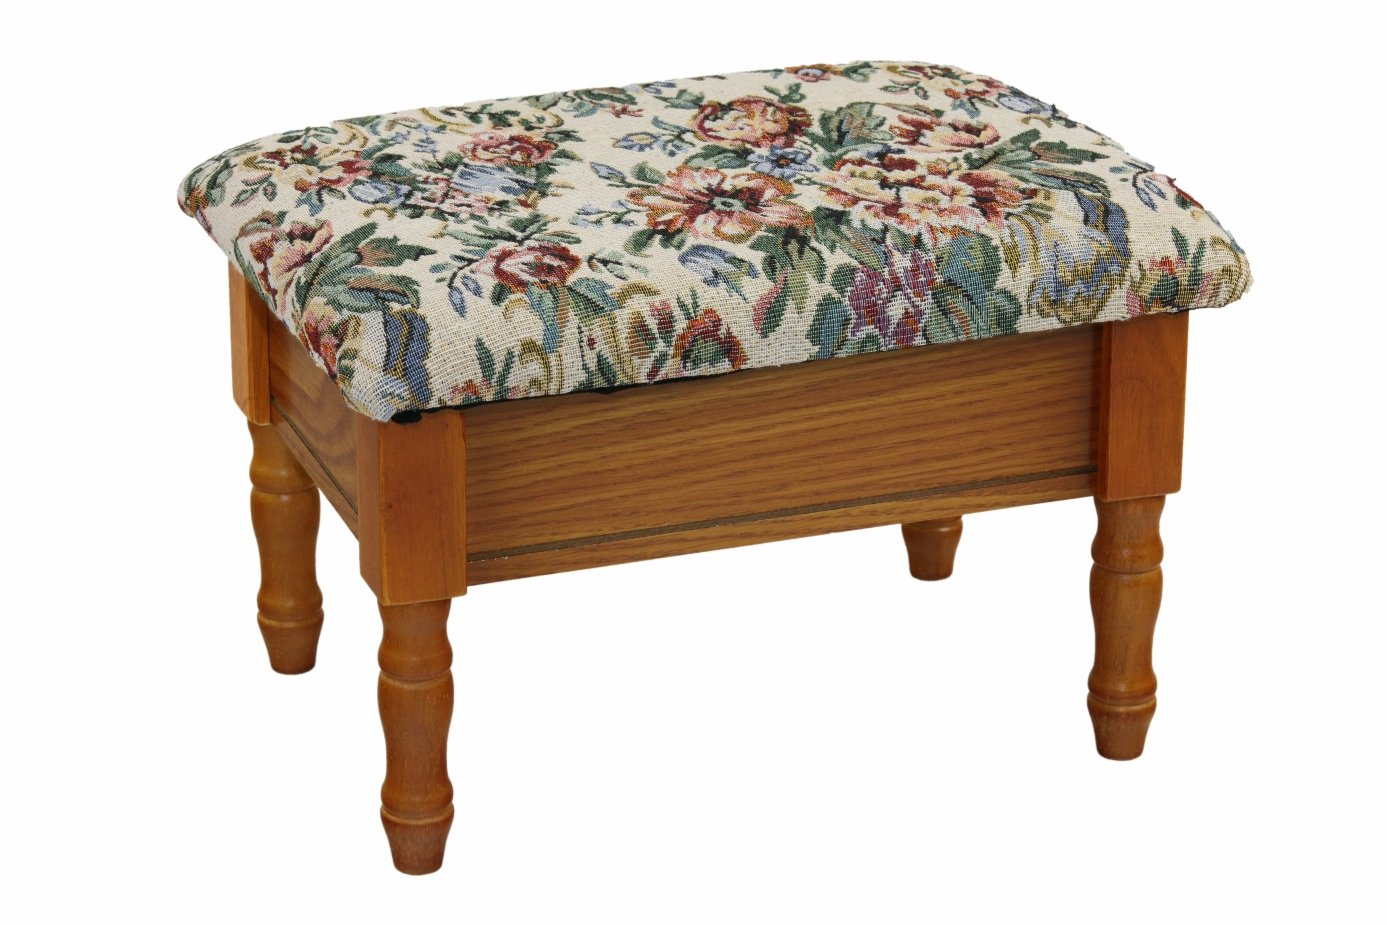 Frenchi furniture queen anne style footstool w storage in for Queen anne furniture